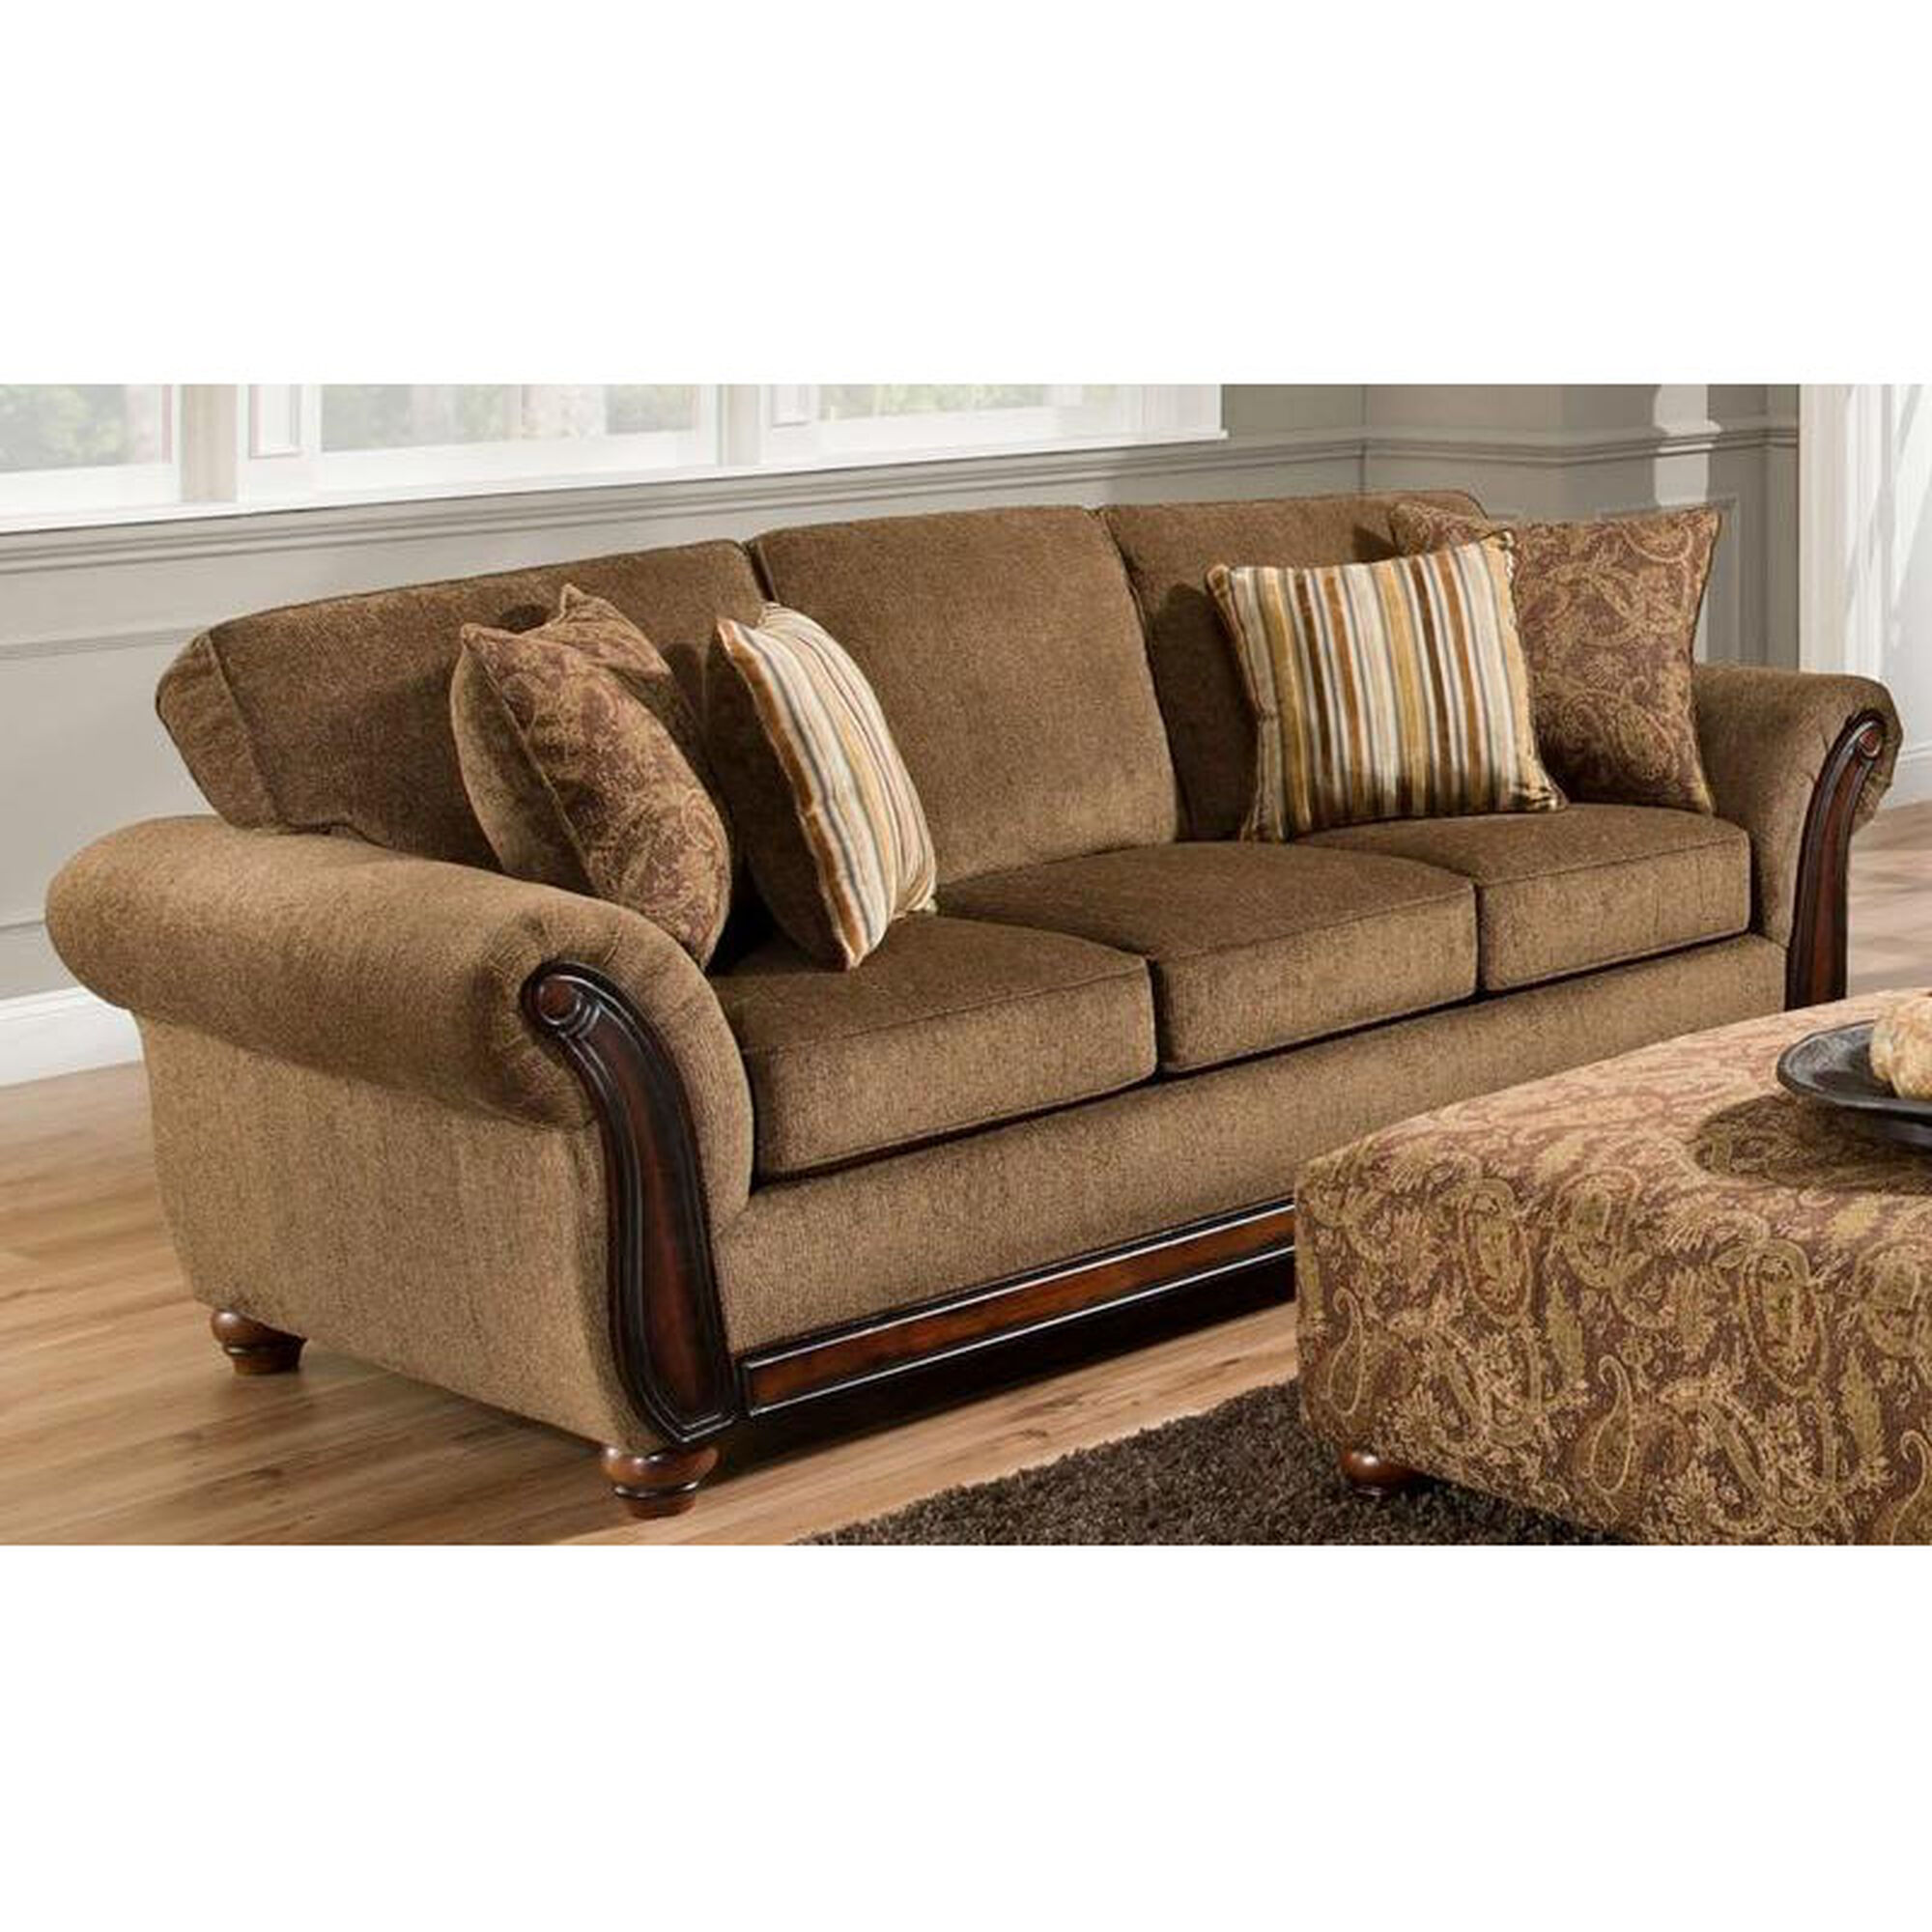 Chelsea home furniture fairfax transitional style for Home furnishing sites